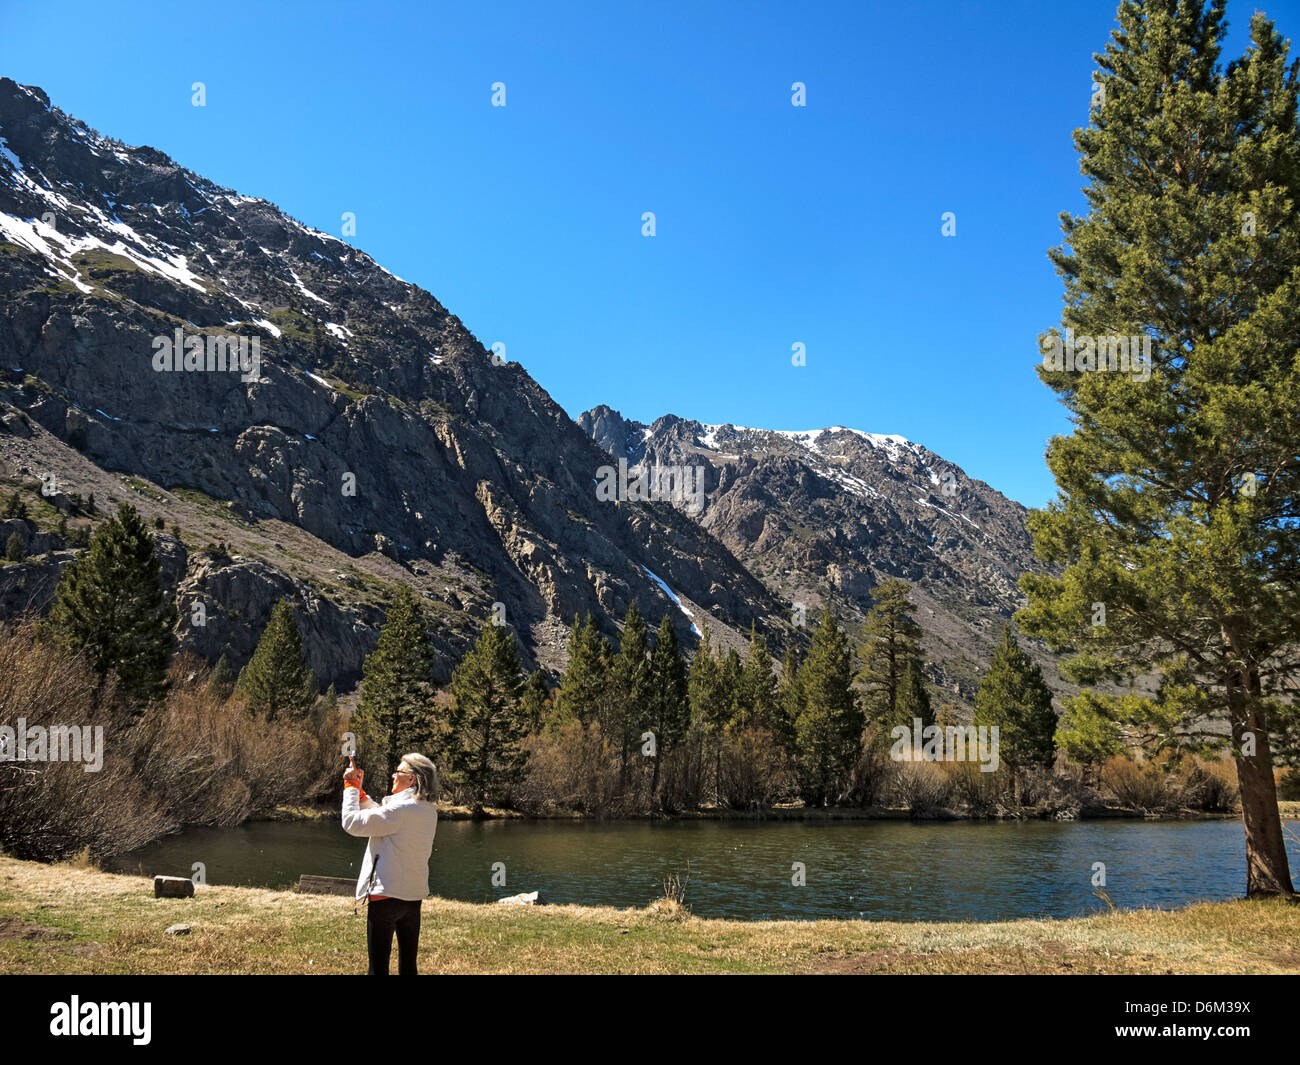 june lake black personals The town of june lake offers the convenience of shopping and dining, while the   many species of wildlife call the mountains home, such as black bear,.